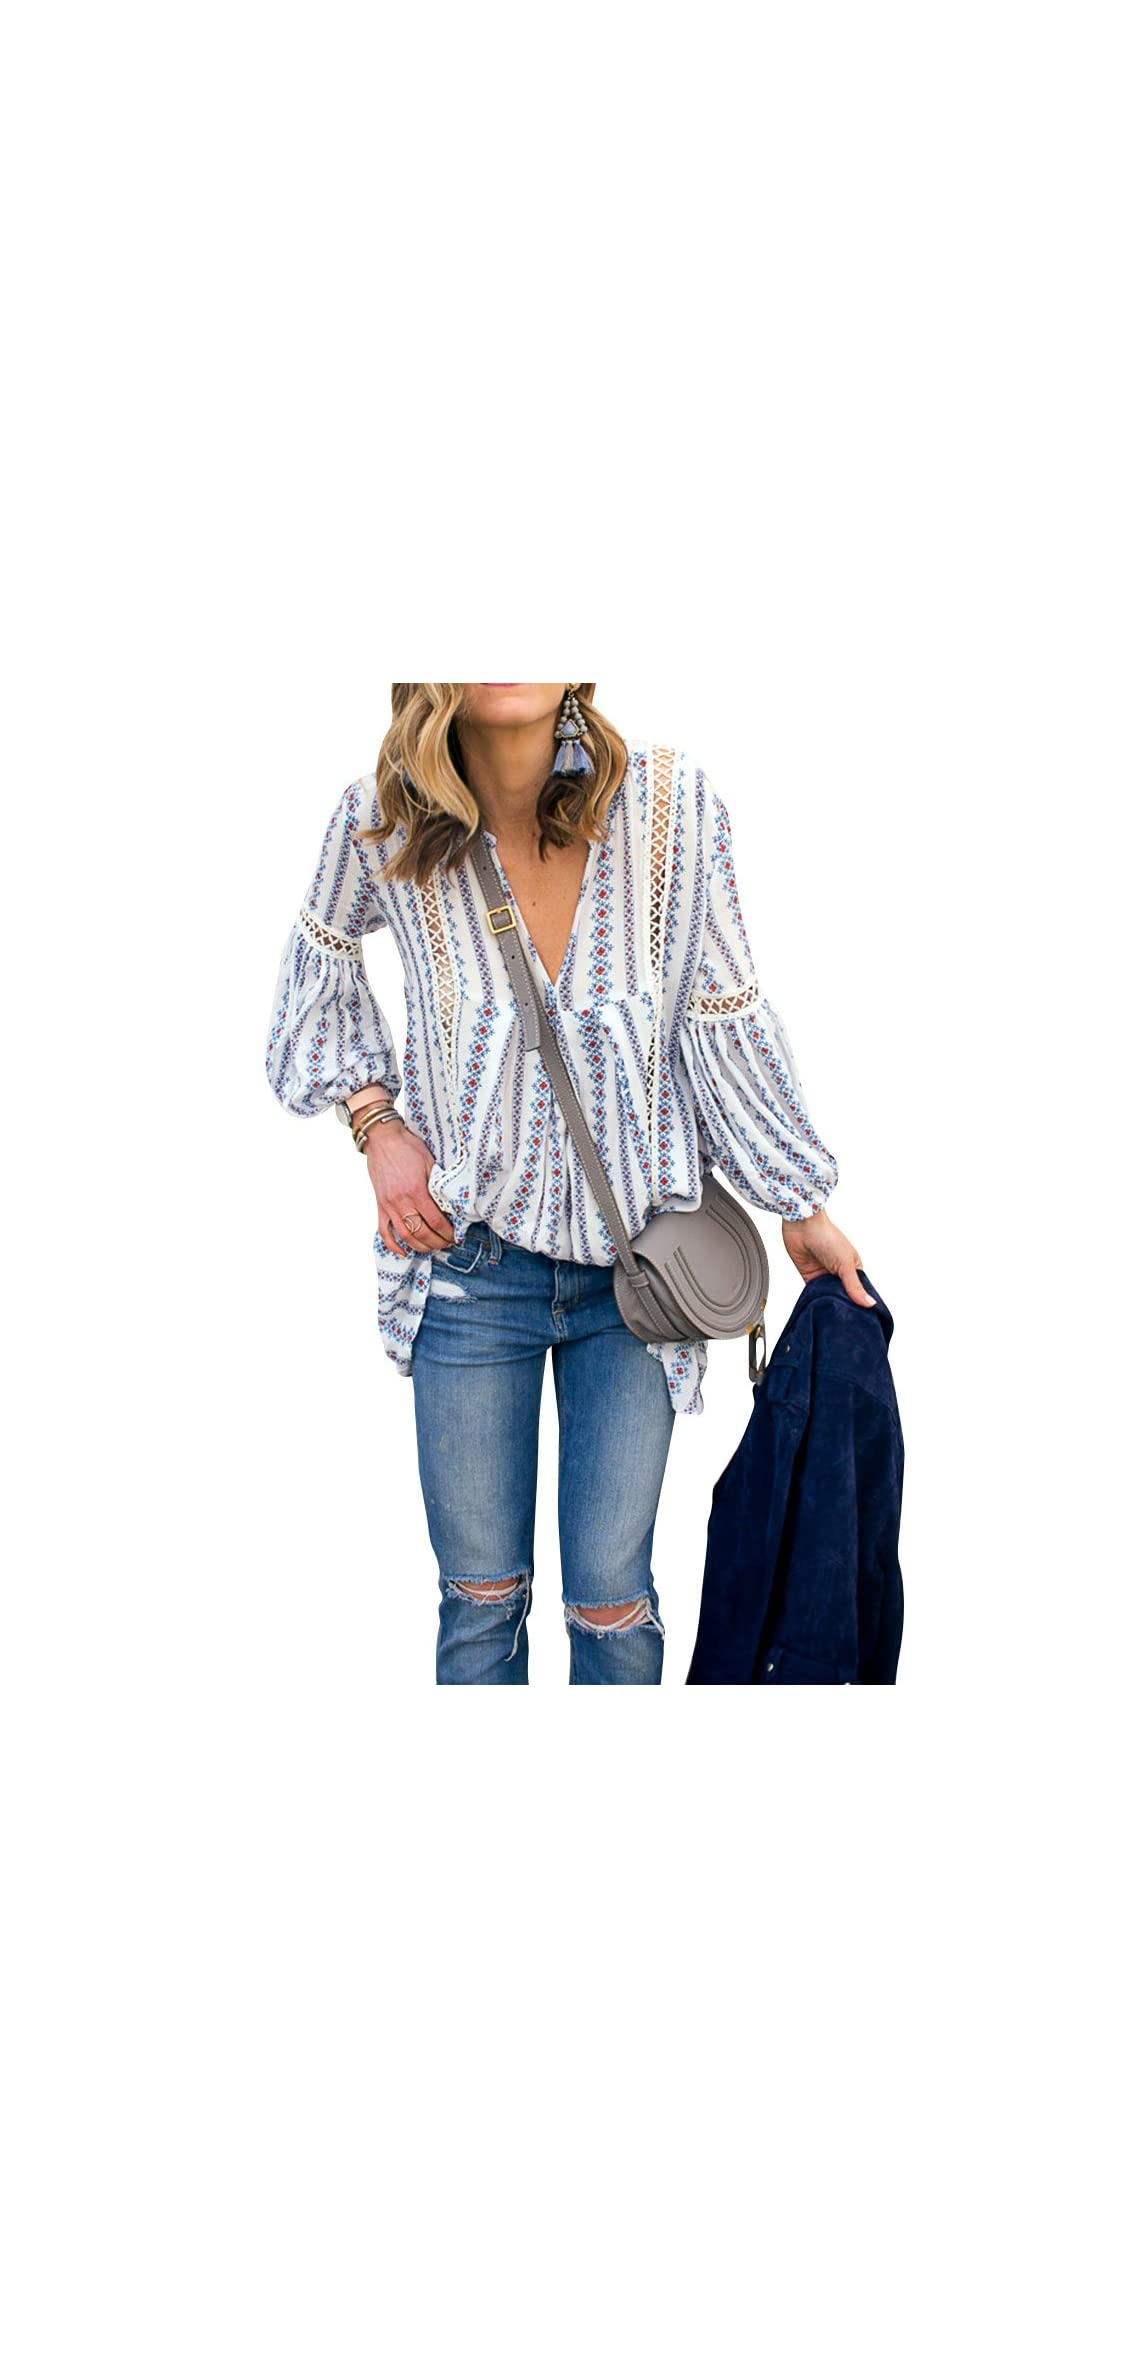 Women Long Sleeve V Neck Hollow Out Floral Print Shirt Tops